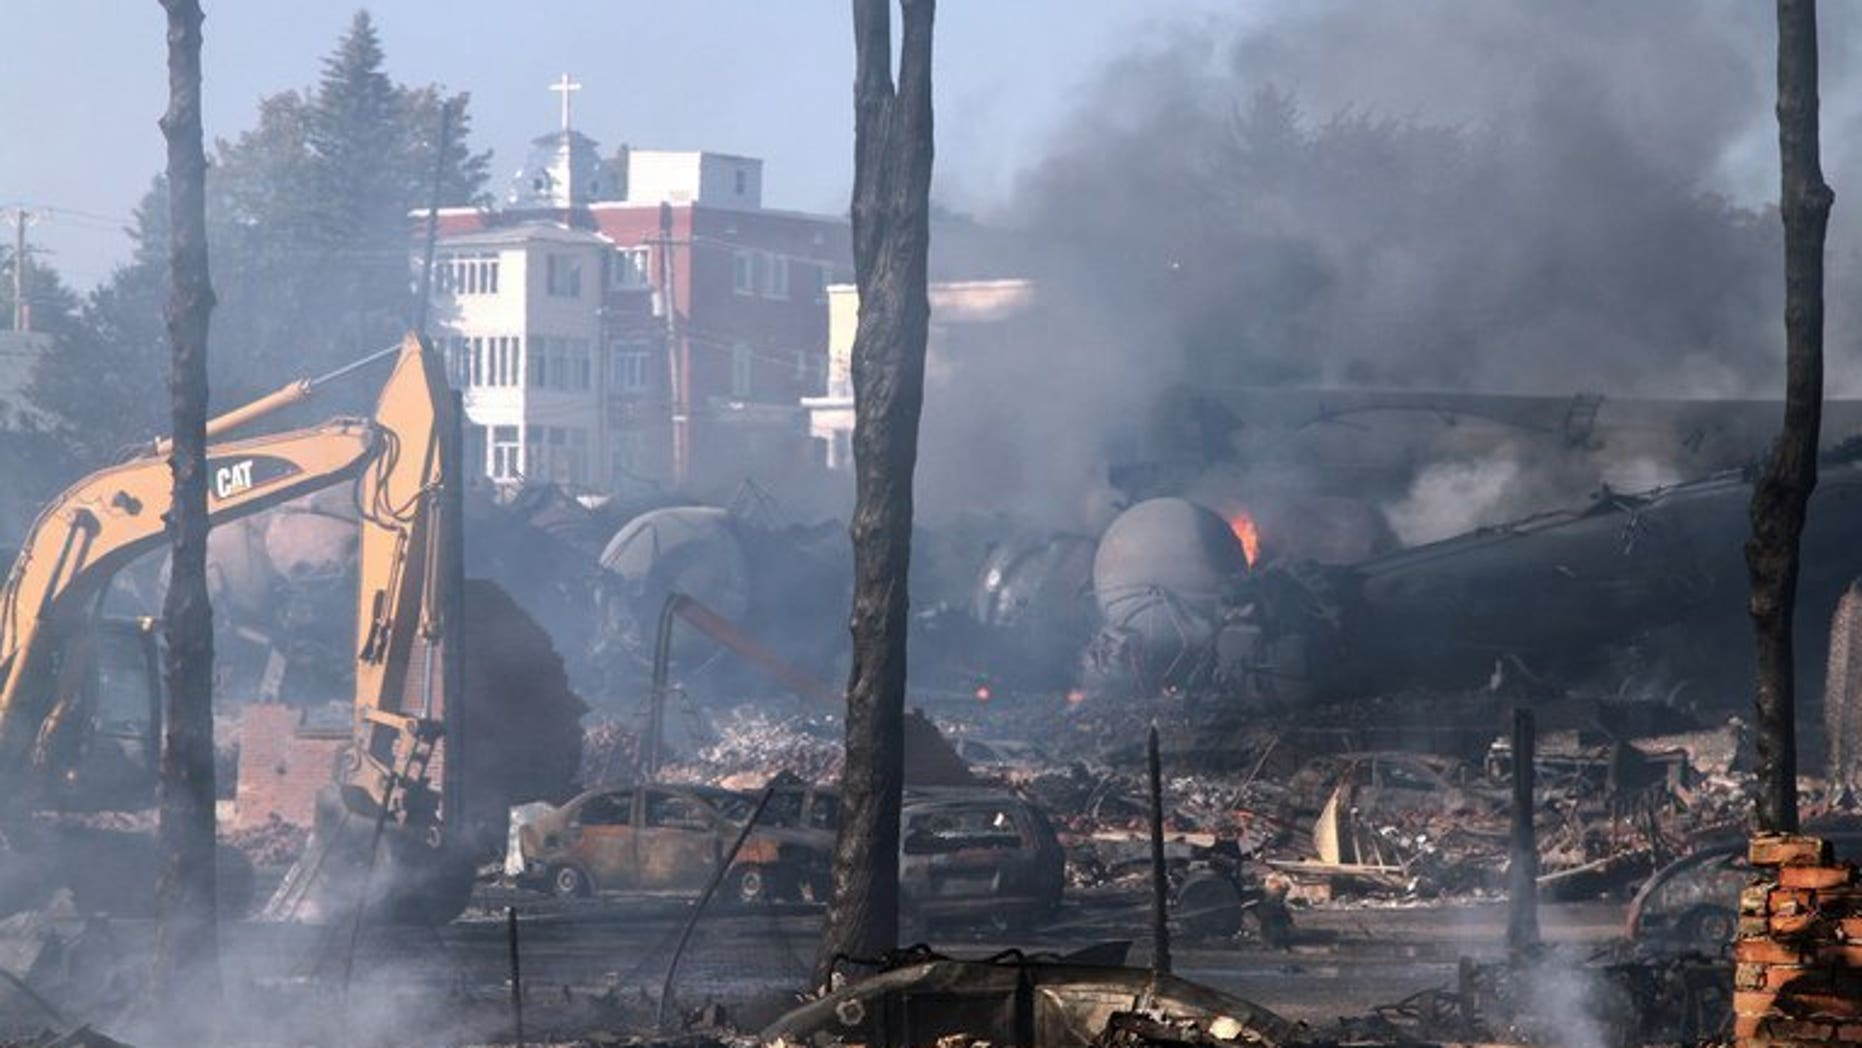 Wrecked oil tankers and debris are shown July 8, 2013 after a runaway train derailed and exploded in Lac-Megantic, Quebec. Montreal, Maine & Atlantic , the owners of the train, have filed for bankruptcy.